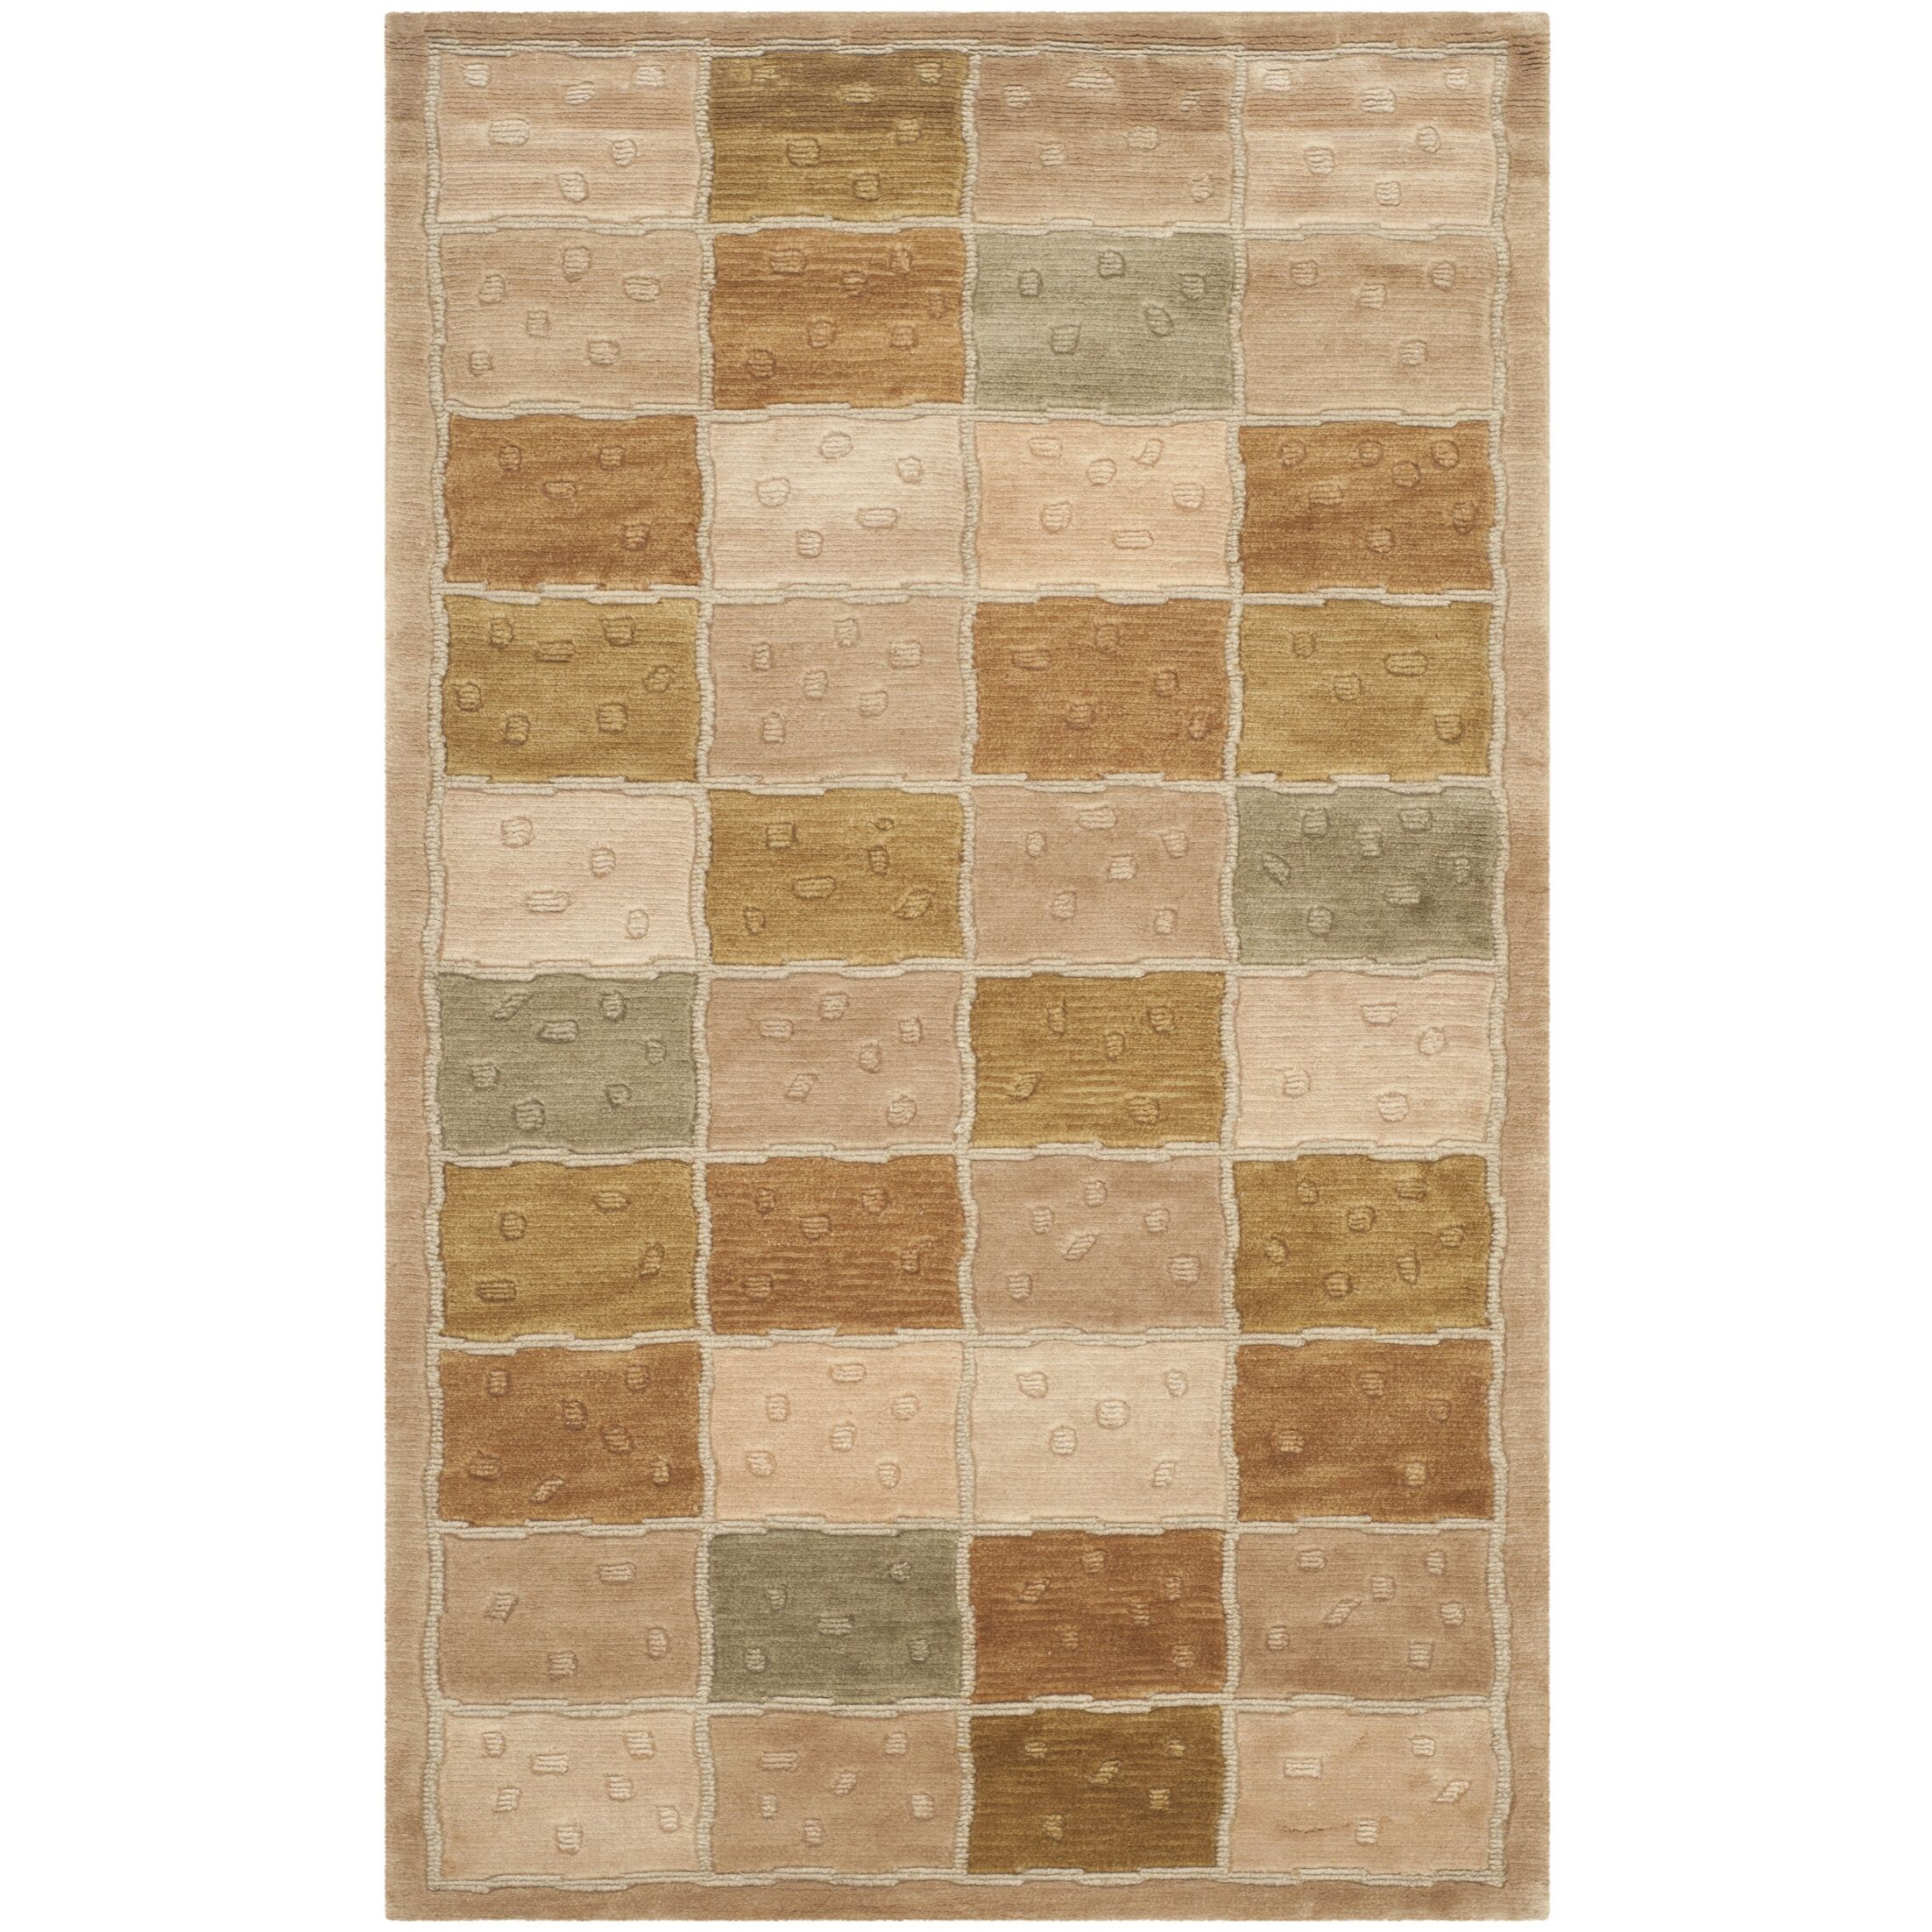 Patchwork Area Rug Rug Size: Rectangle 4' x 6'